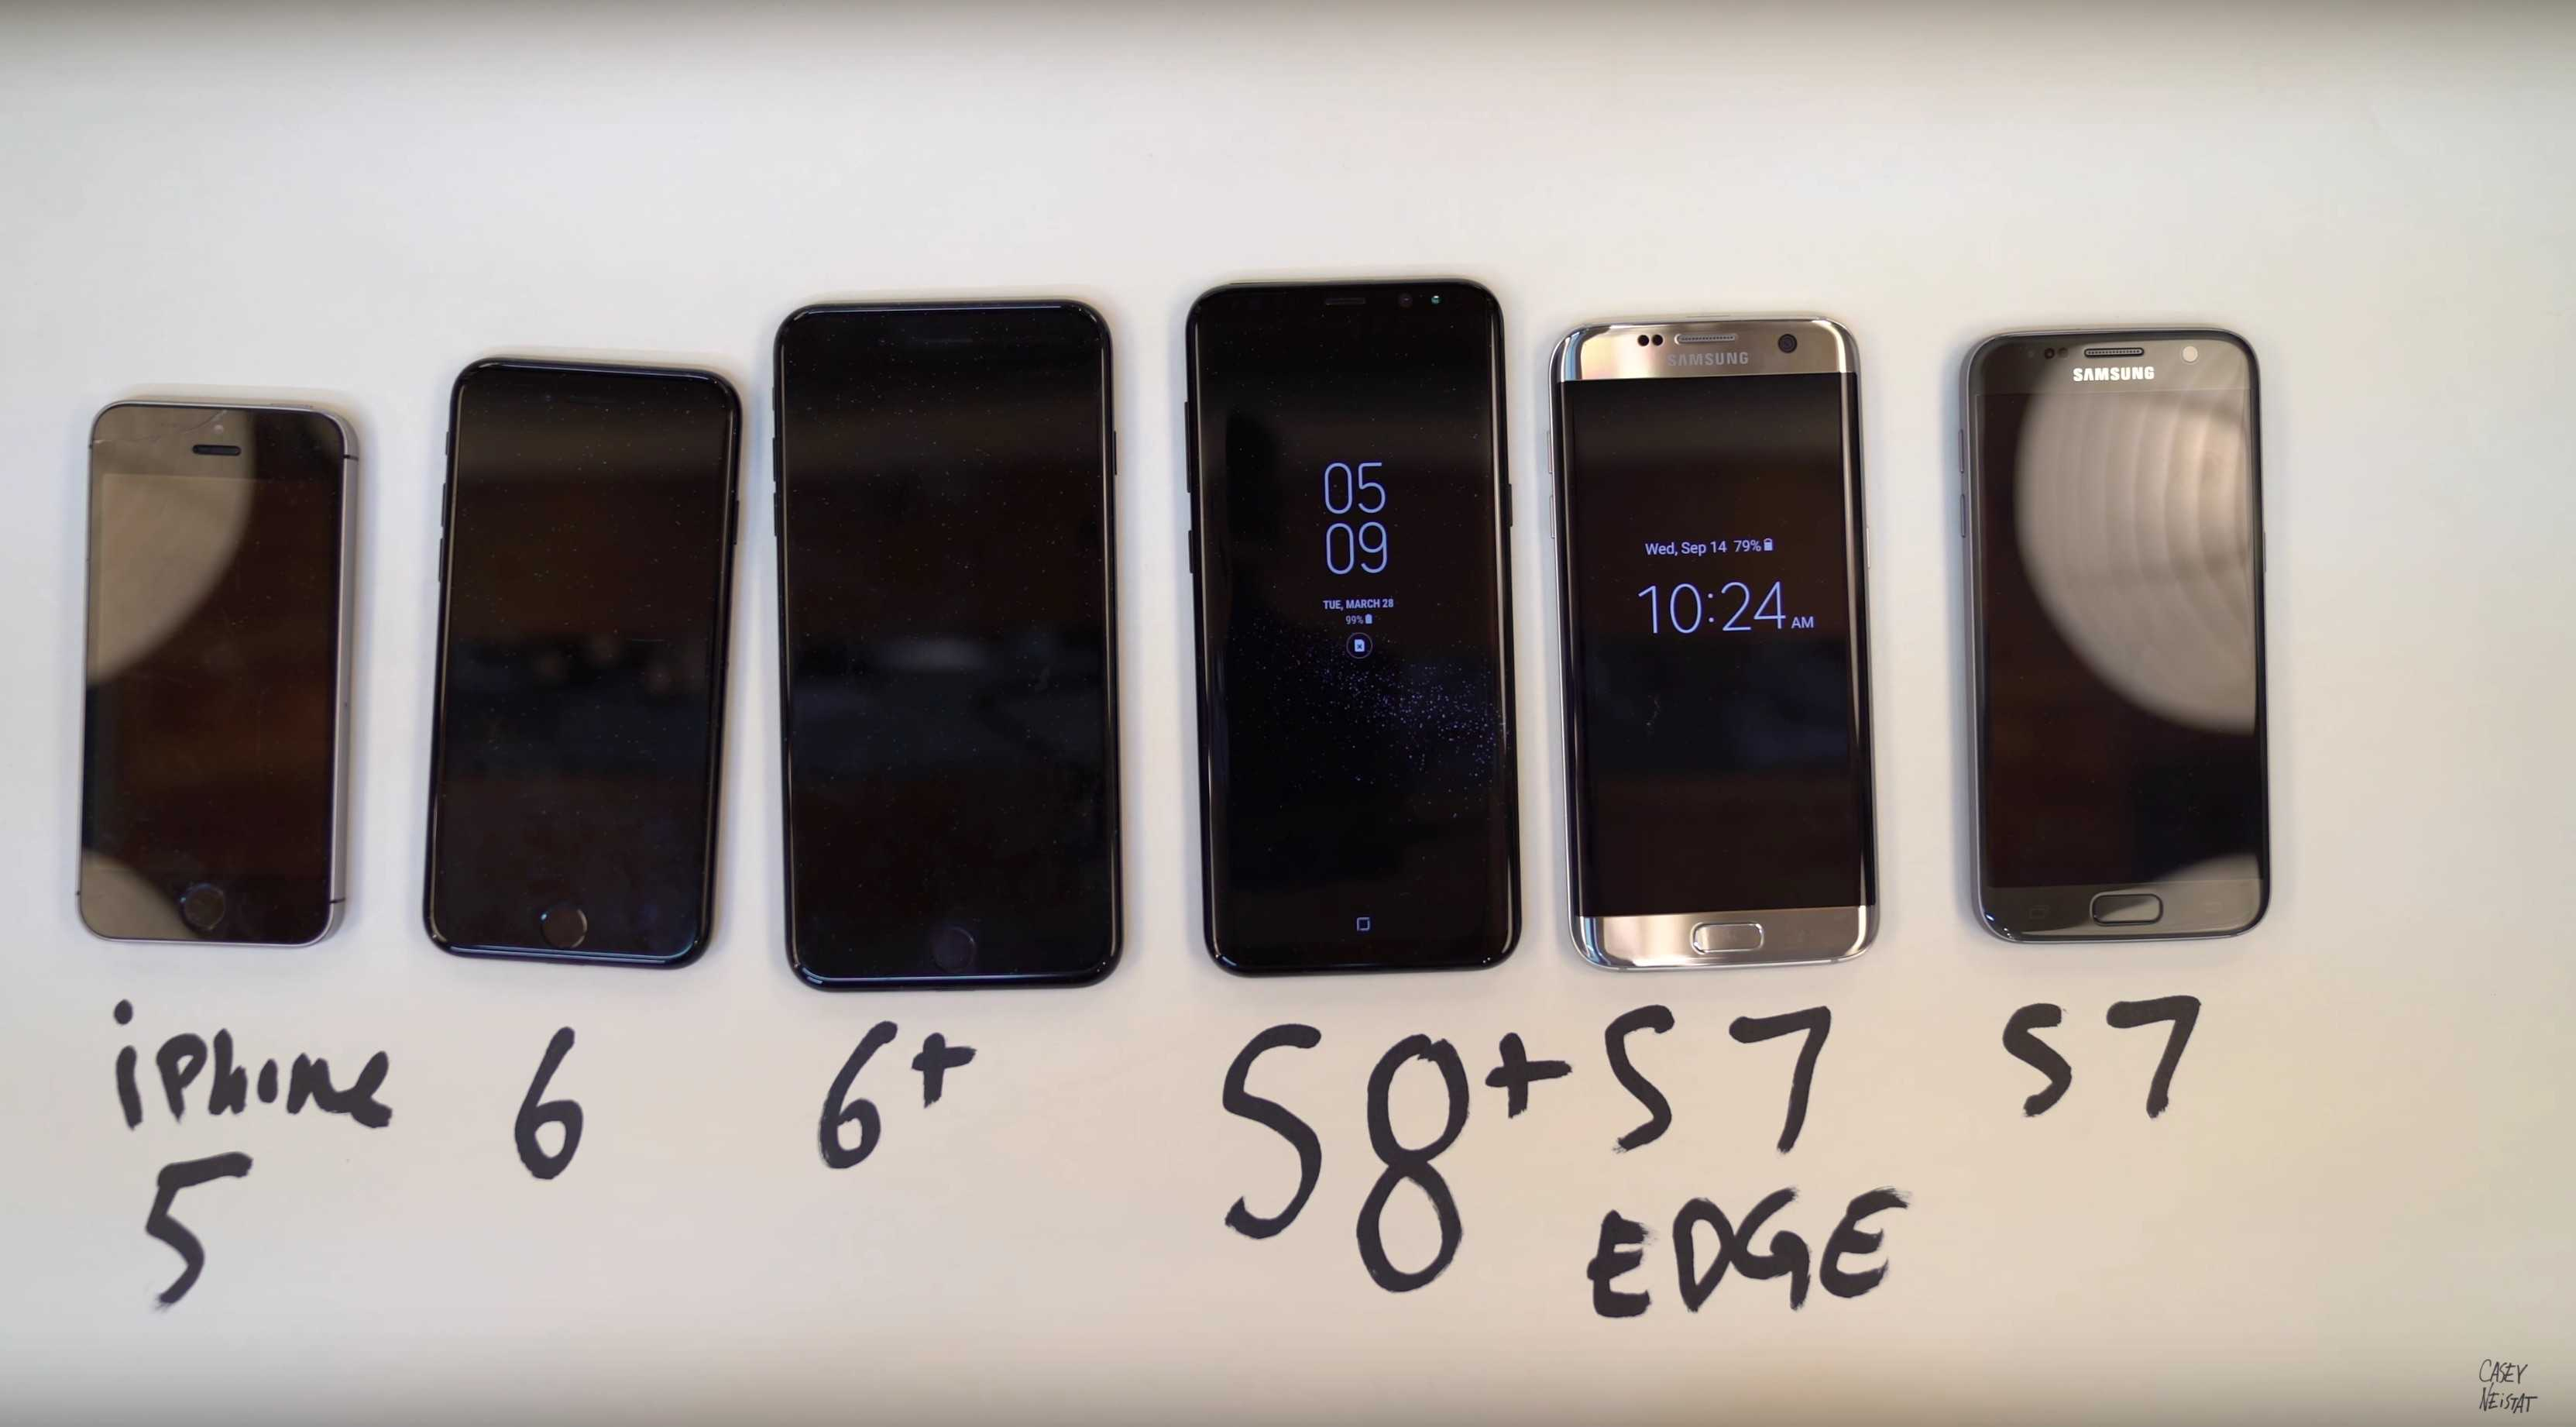 The S8 looks stunning next to old smartphones.